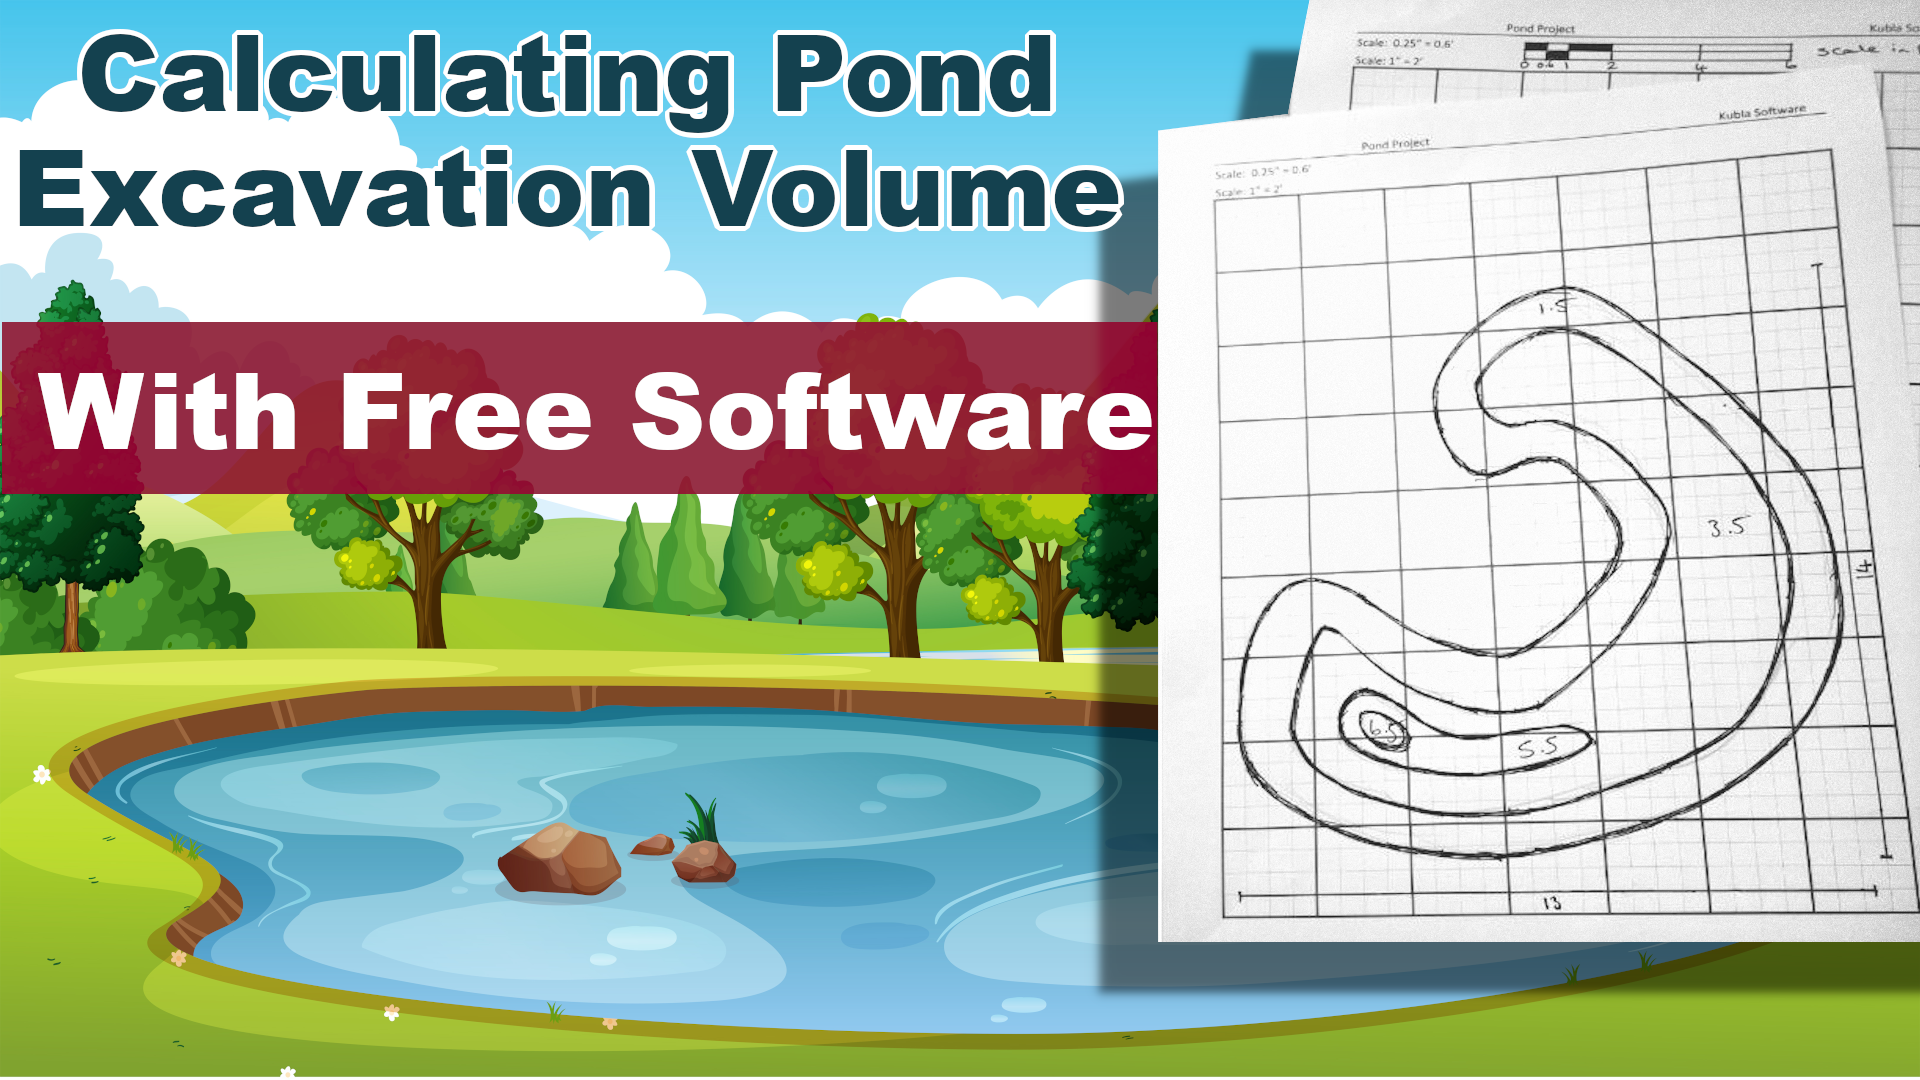 How To Calculate The Excavation Volume Of A Pond, Using Free Software